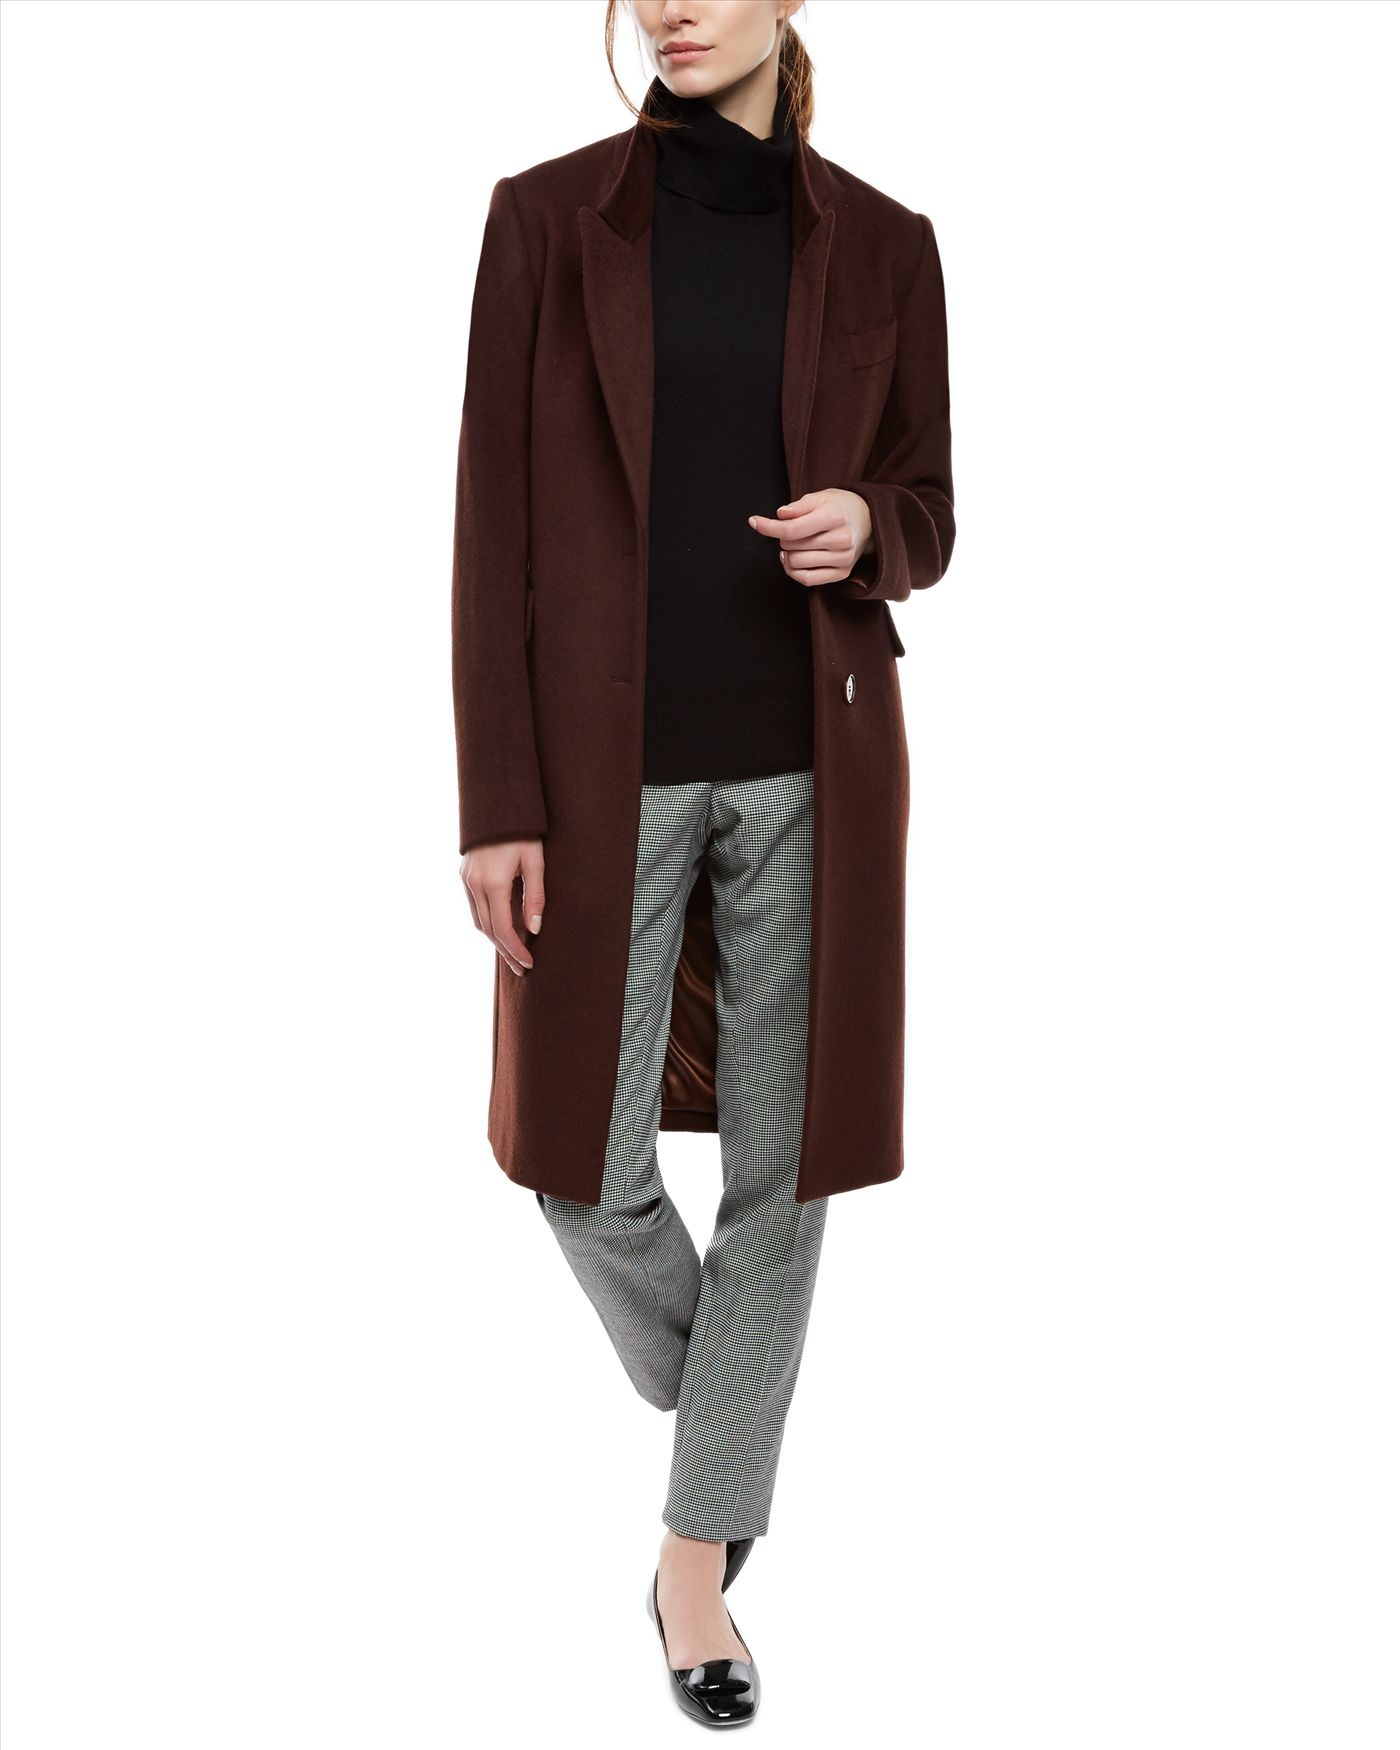 Find and save ideas about Boyfriend coat on Pinterest. | See more ideas about Winter sweater dresses, Minimal chic and Designer winter coats. Women's fashion. Boyfriend coat; Boyfriend coat Baggy grey/ brown jacket with black collar + black skinny jeans, brogues and white top So into big coats! Doutzen Kroes out & about while keeping it.